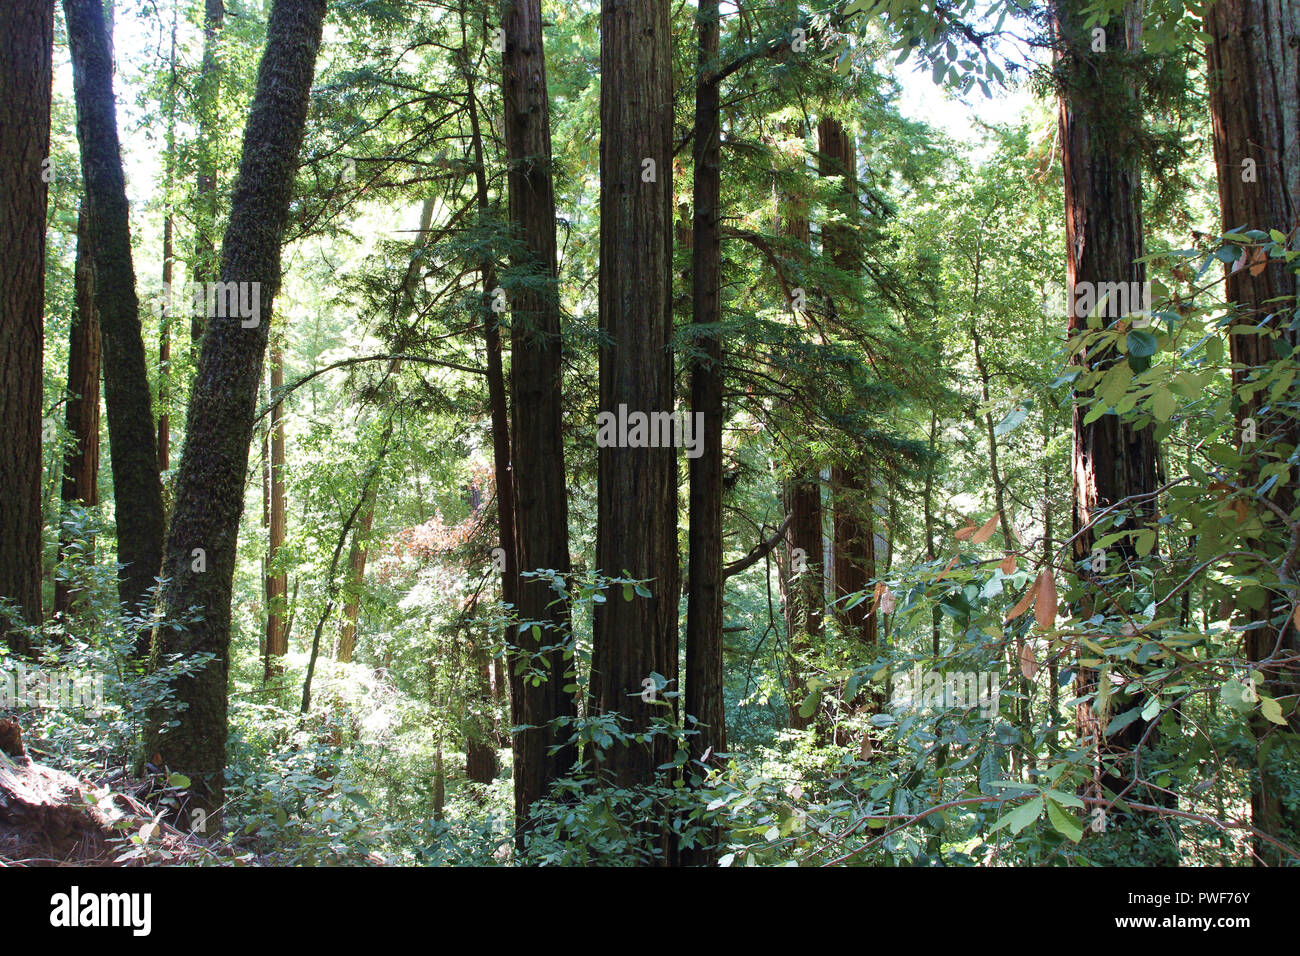 Walking along the Redwood Trail amongst Redwood trees at Big Basin Redwoods State Park in Boulder Creek, California, USA - Stock Image